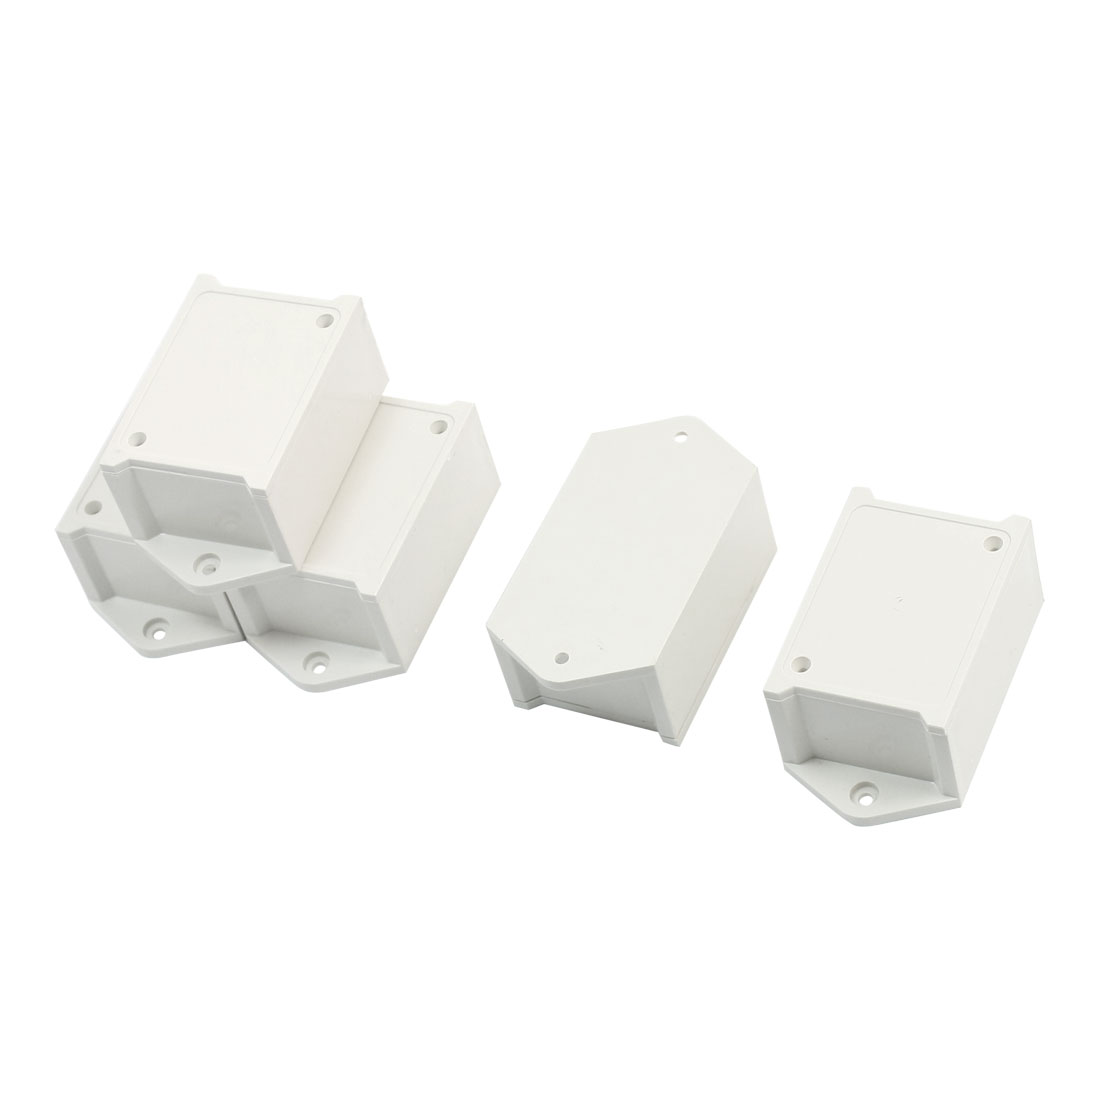 5pcs Gray Plastic Project Power Protector Case Junction Box 55x39x27mm